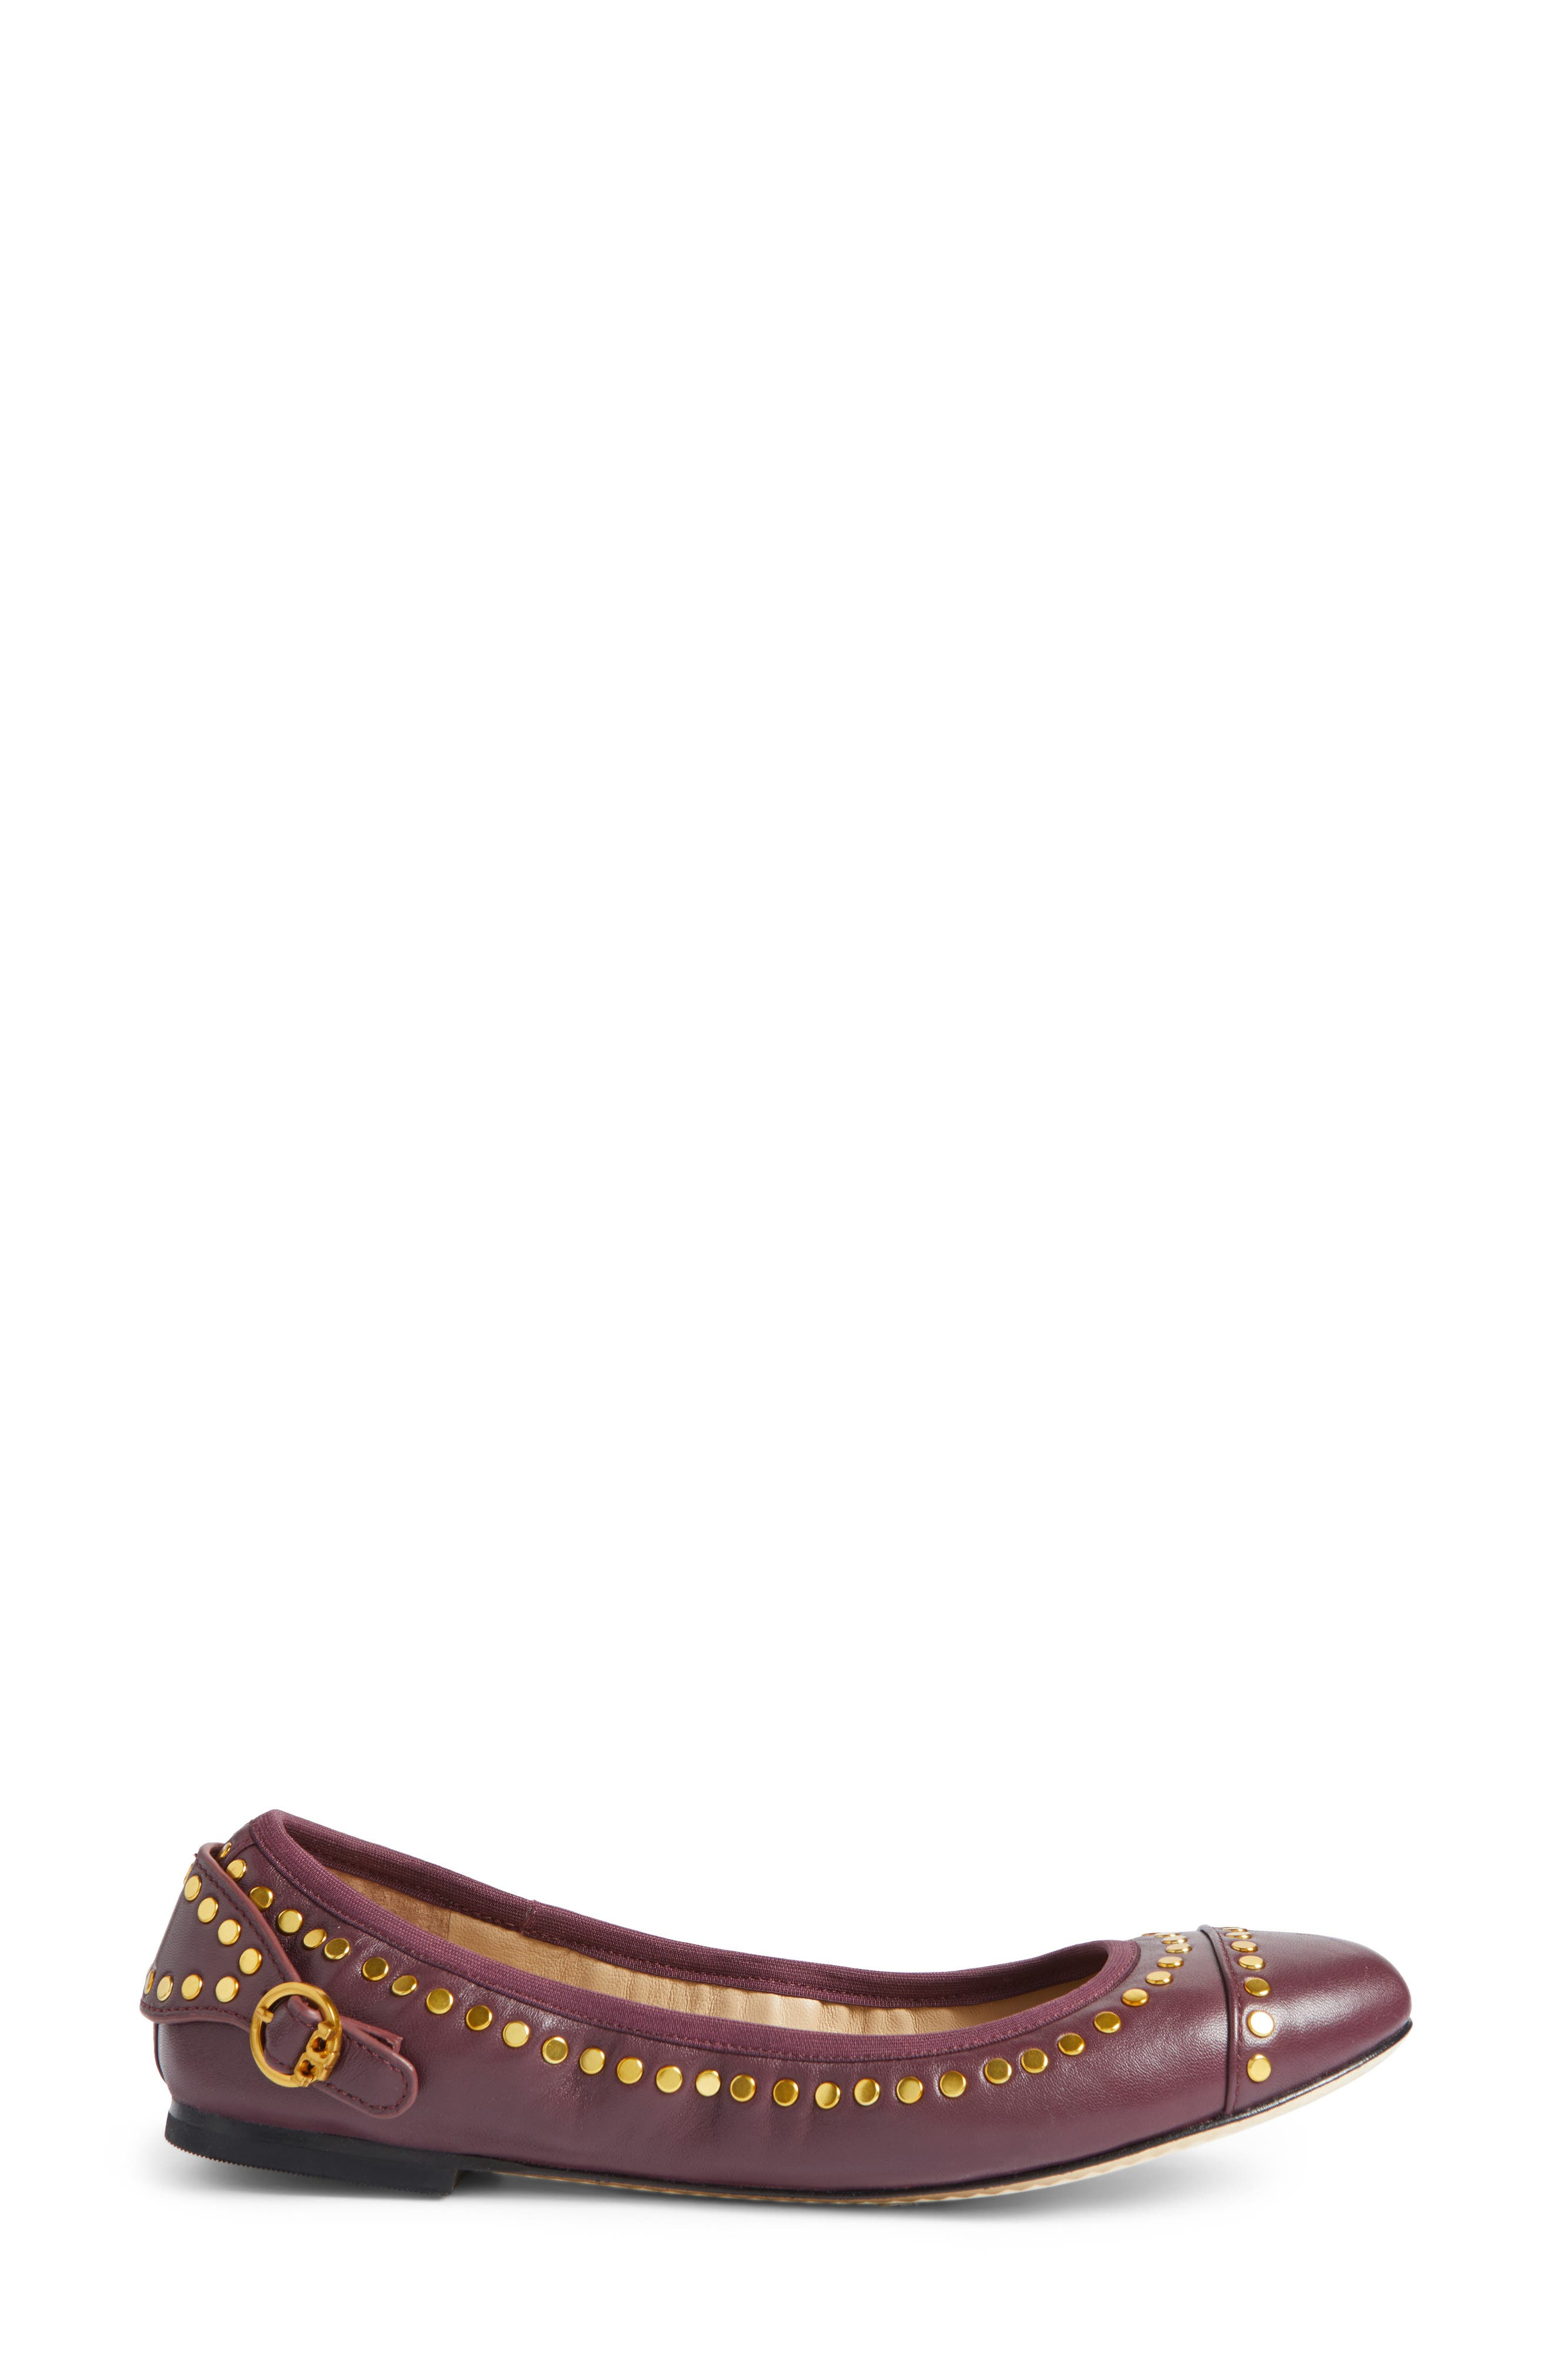 Alternate Image 3  - Tory Burch Holden Studded Cap Toe Flat (Women)